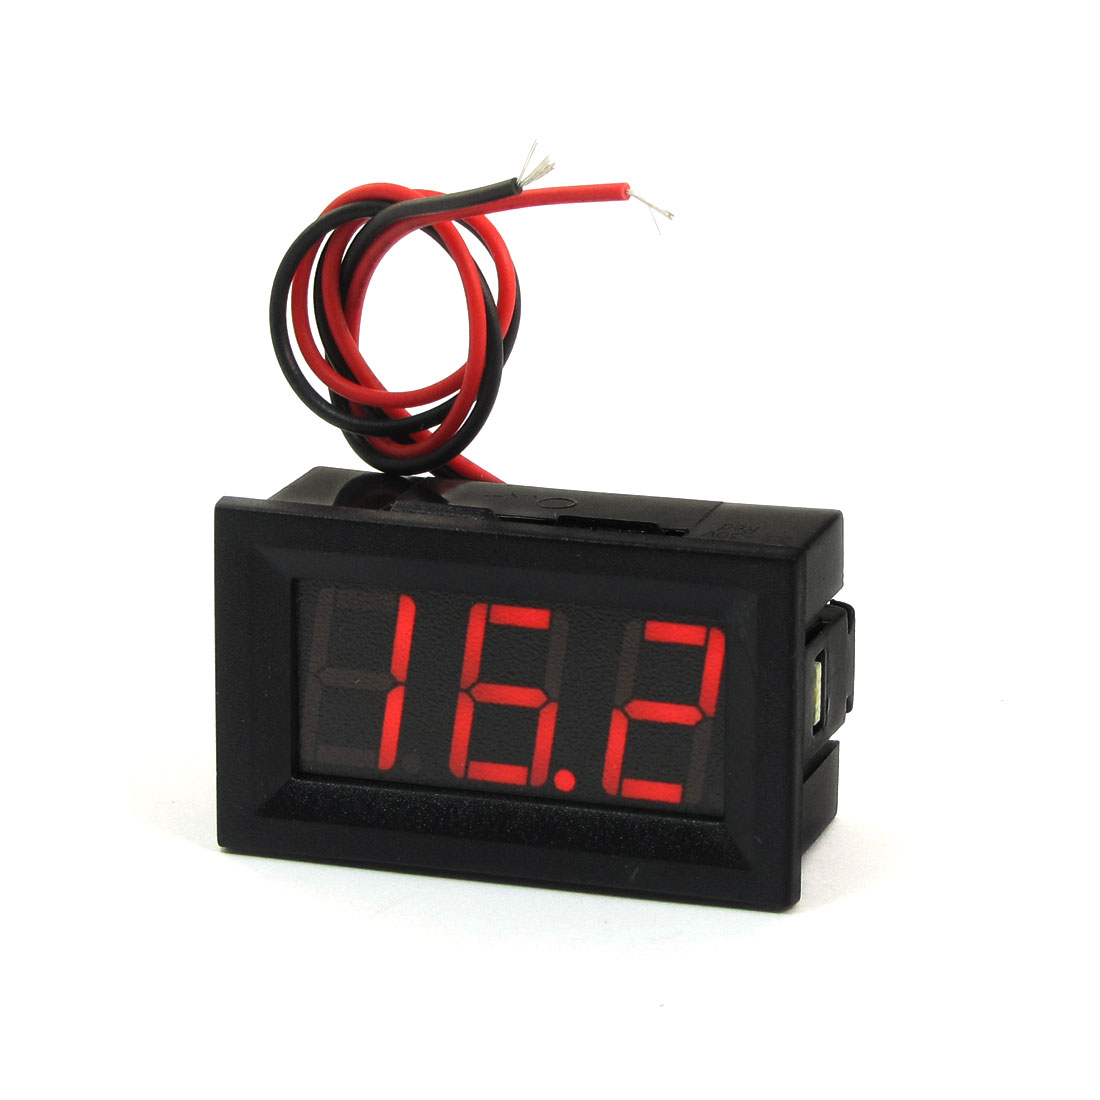 "V27D-T1 0.56"" 3-Digital DC 3.2-30V Voltage Meter LED Voltmeter"